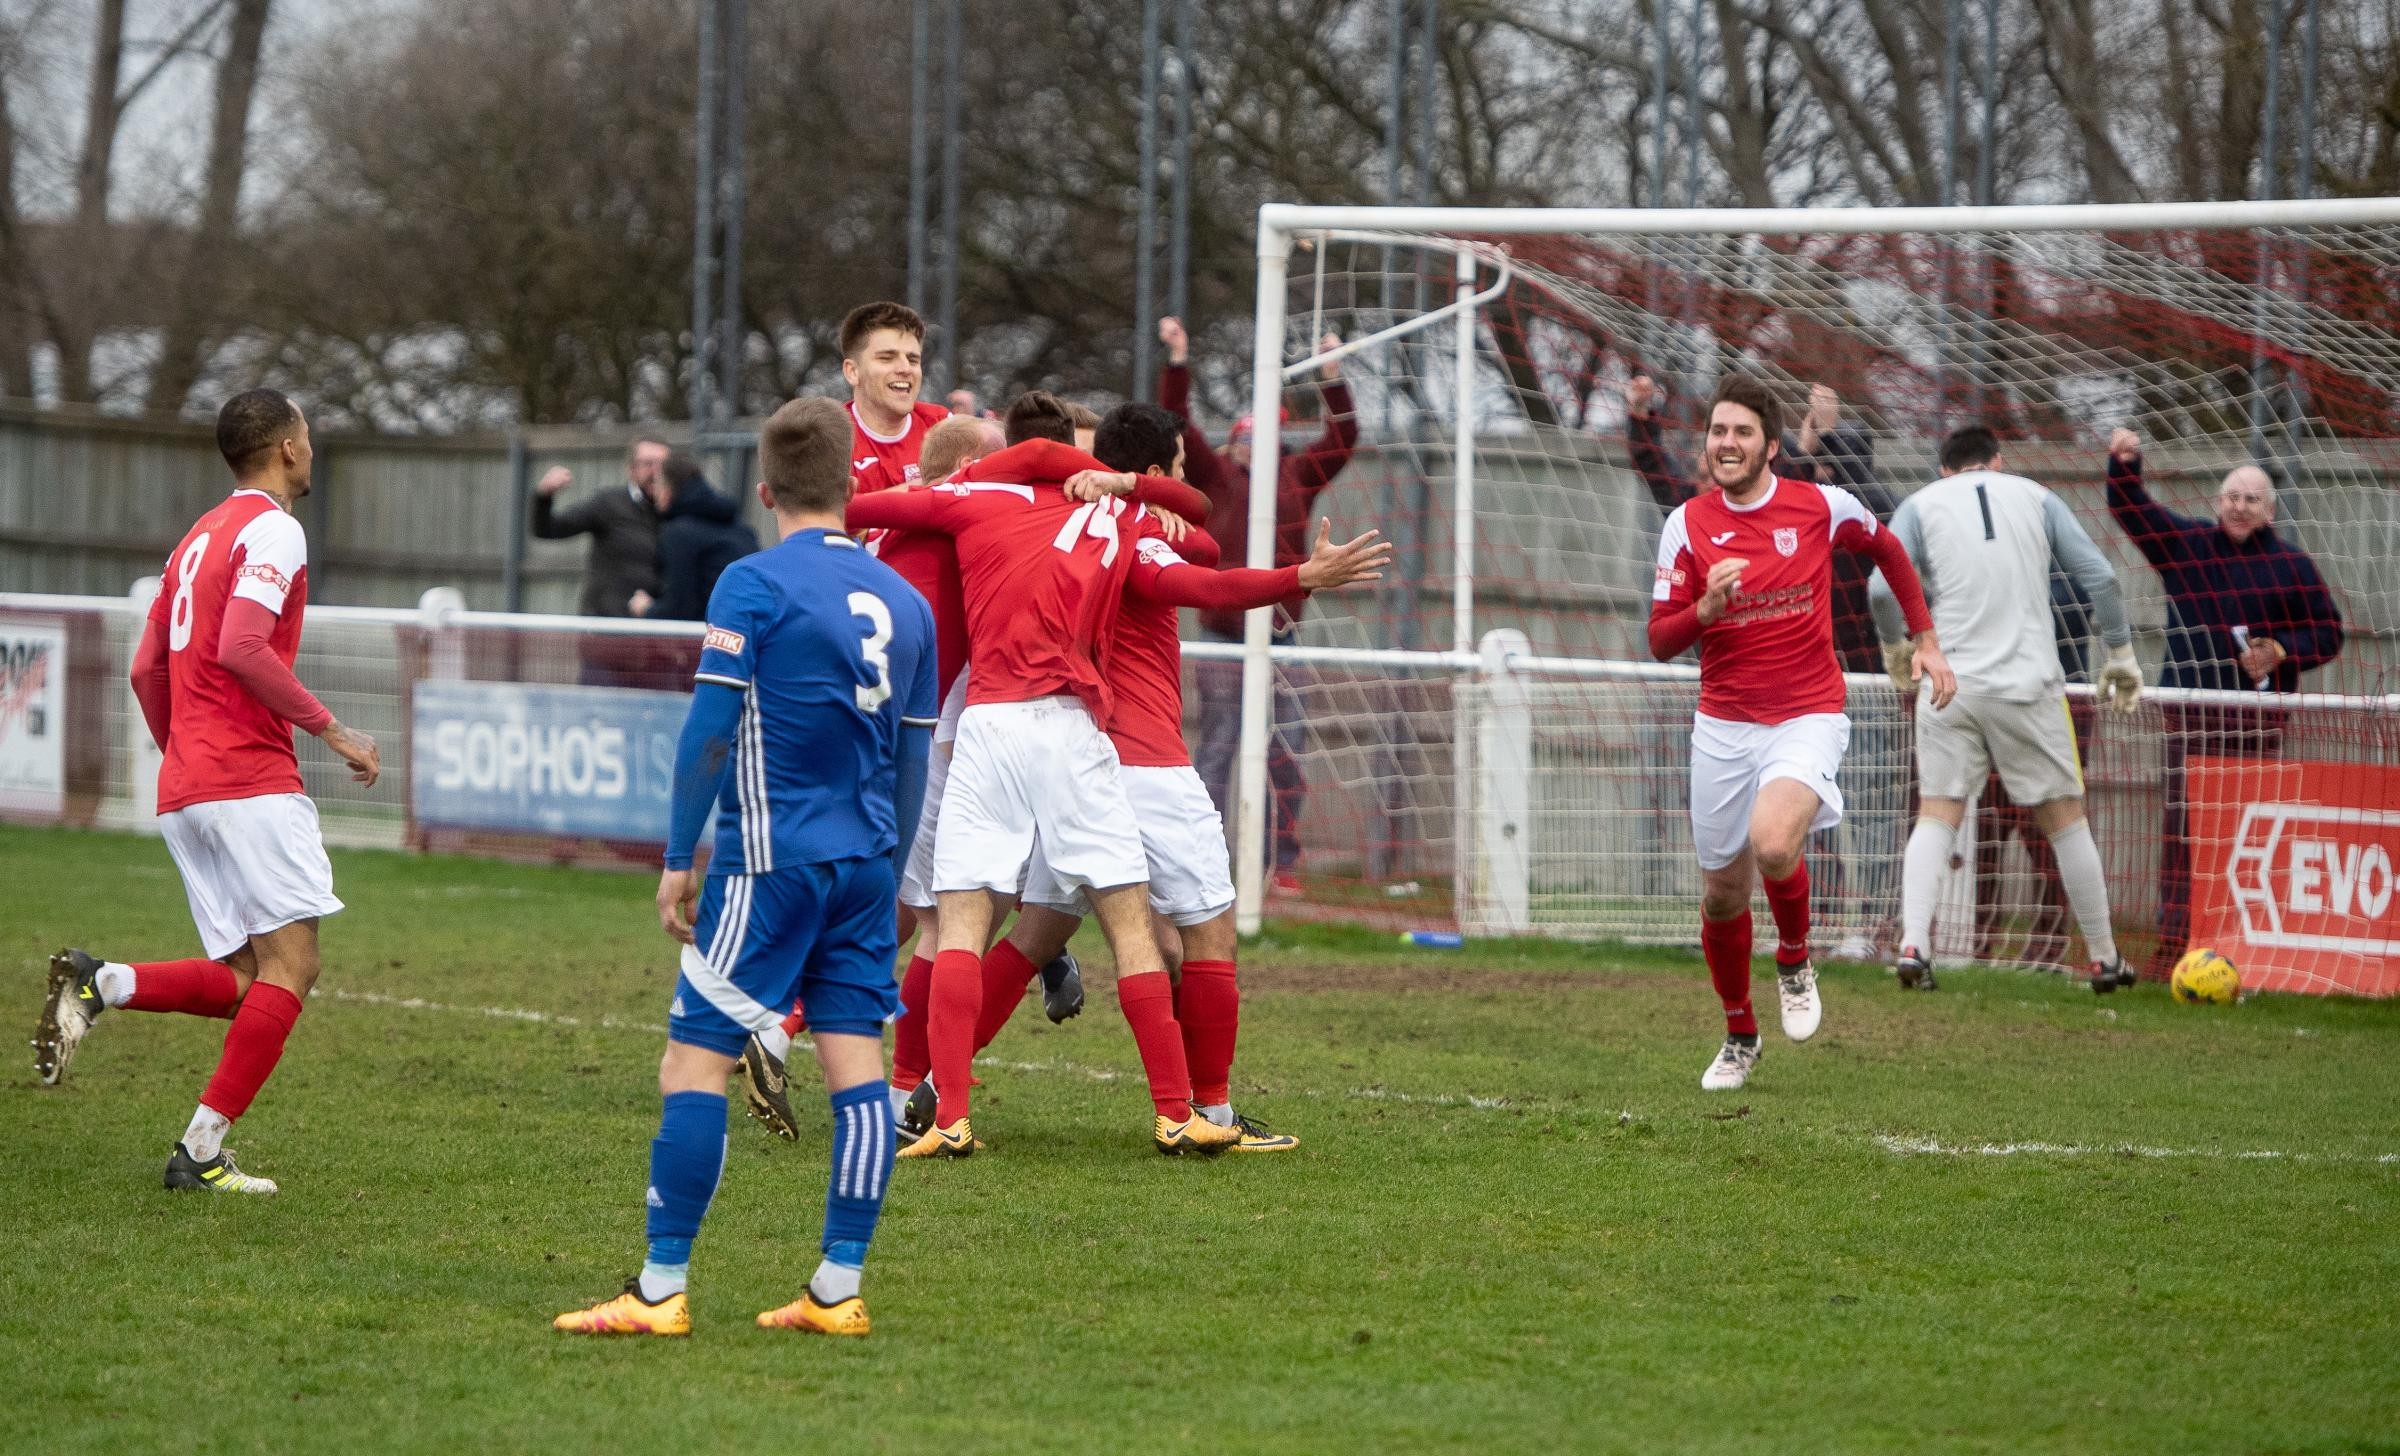 Didcot Town's players celebrate the dramatic injury-time goal from Felipe Barcelos which rescued a point against Peterborough Sports, who had taken the lead through Dion Sembie-Ferris Picture: Richard Cave